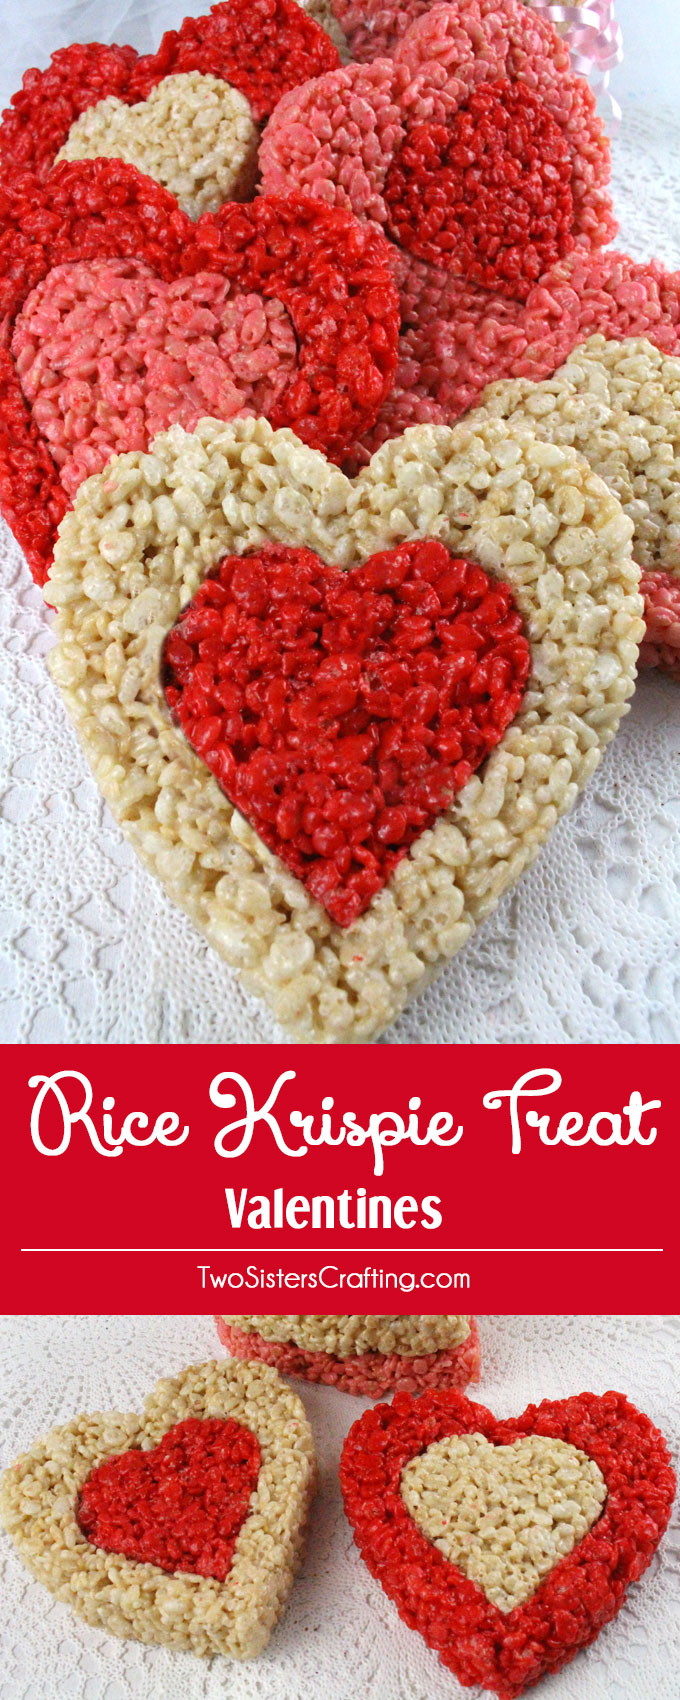 Rice Krispie Treat Valentines Two Sisters